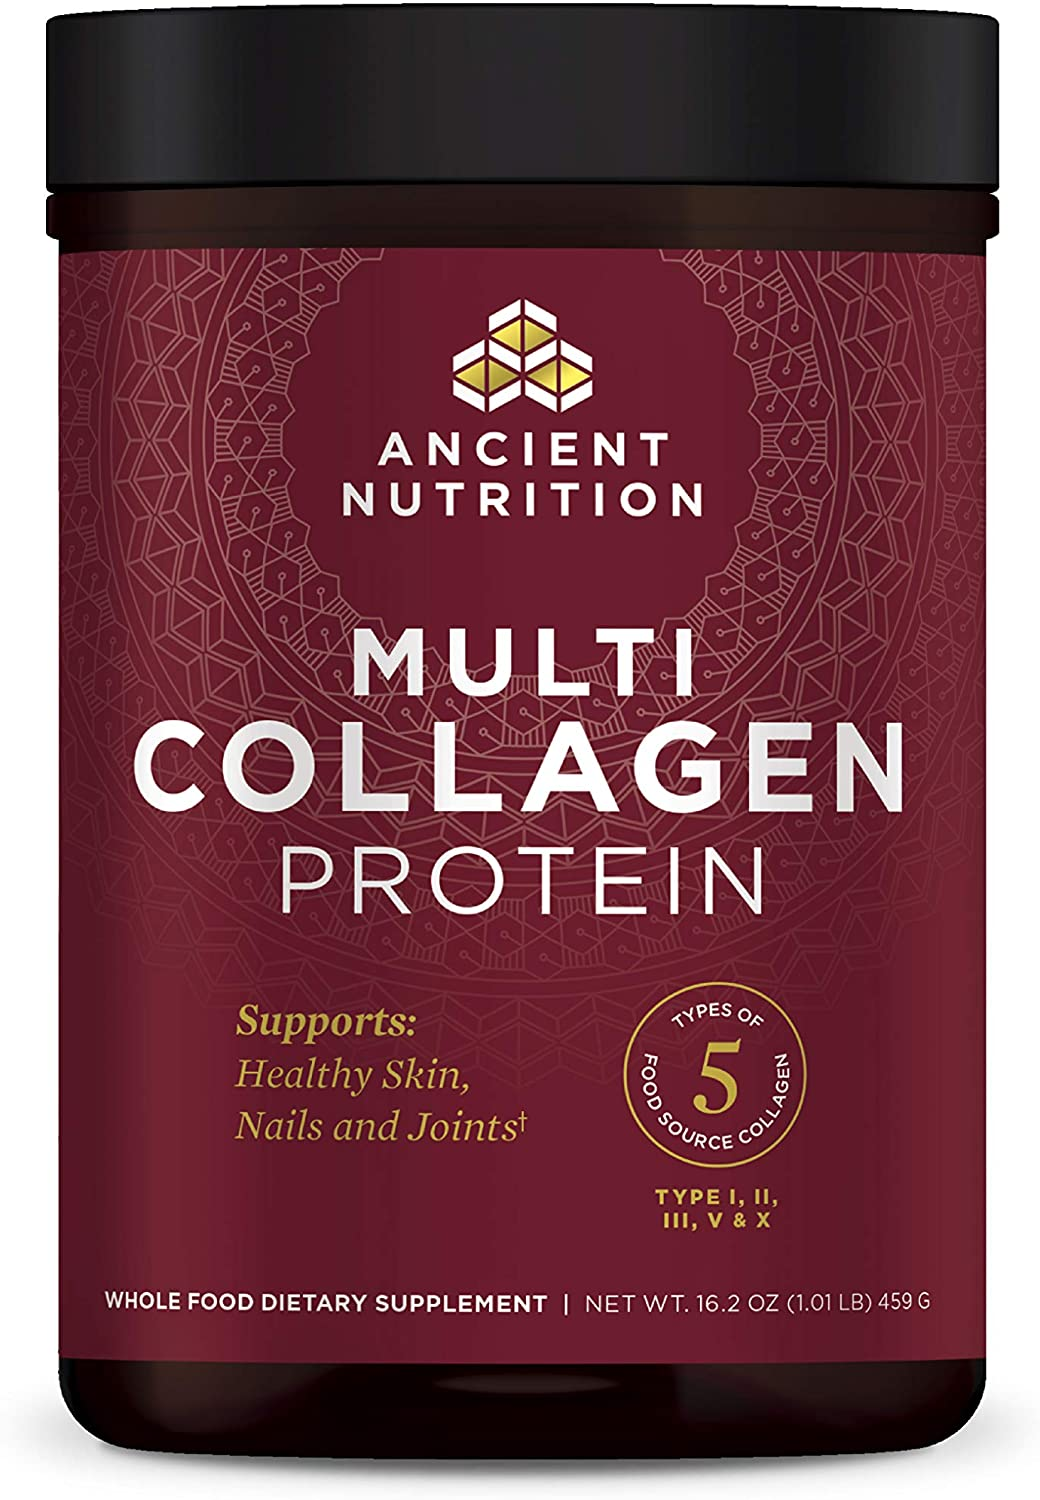 Ancient Nutrition Multi Collagen Protein Supplement